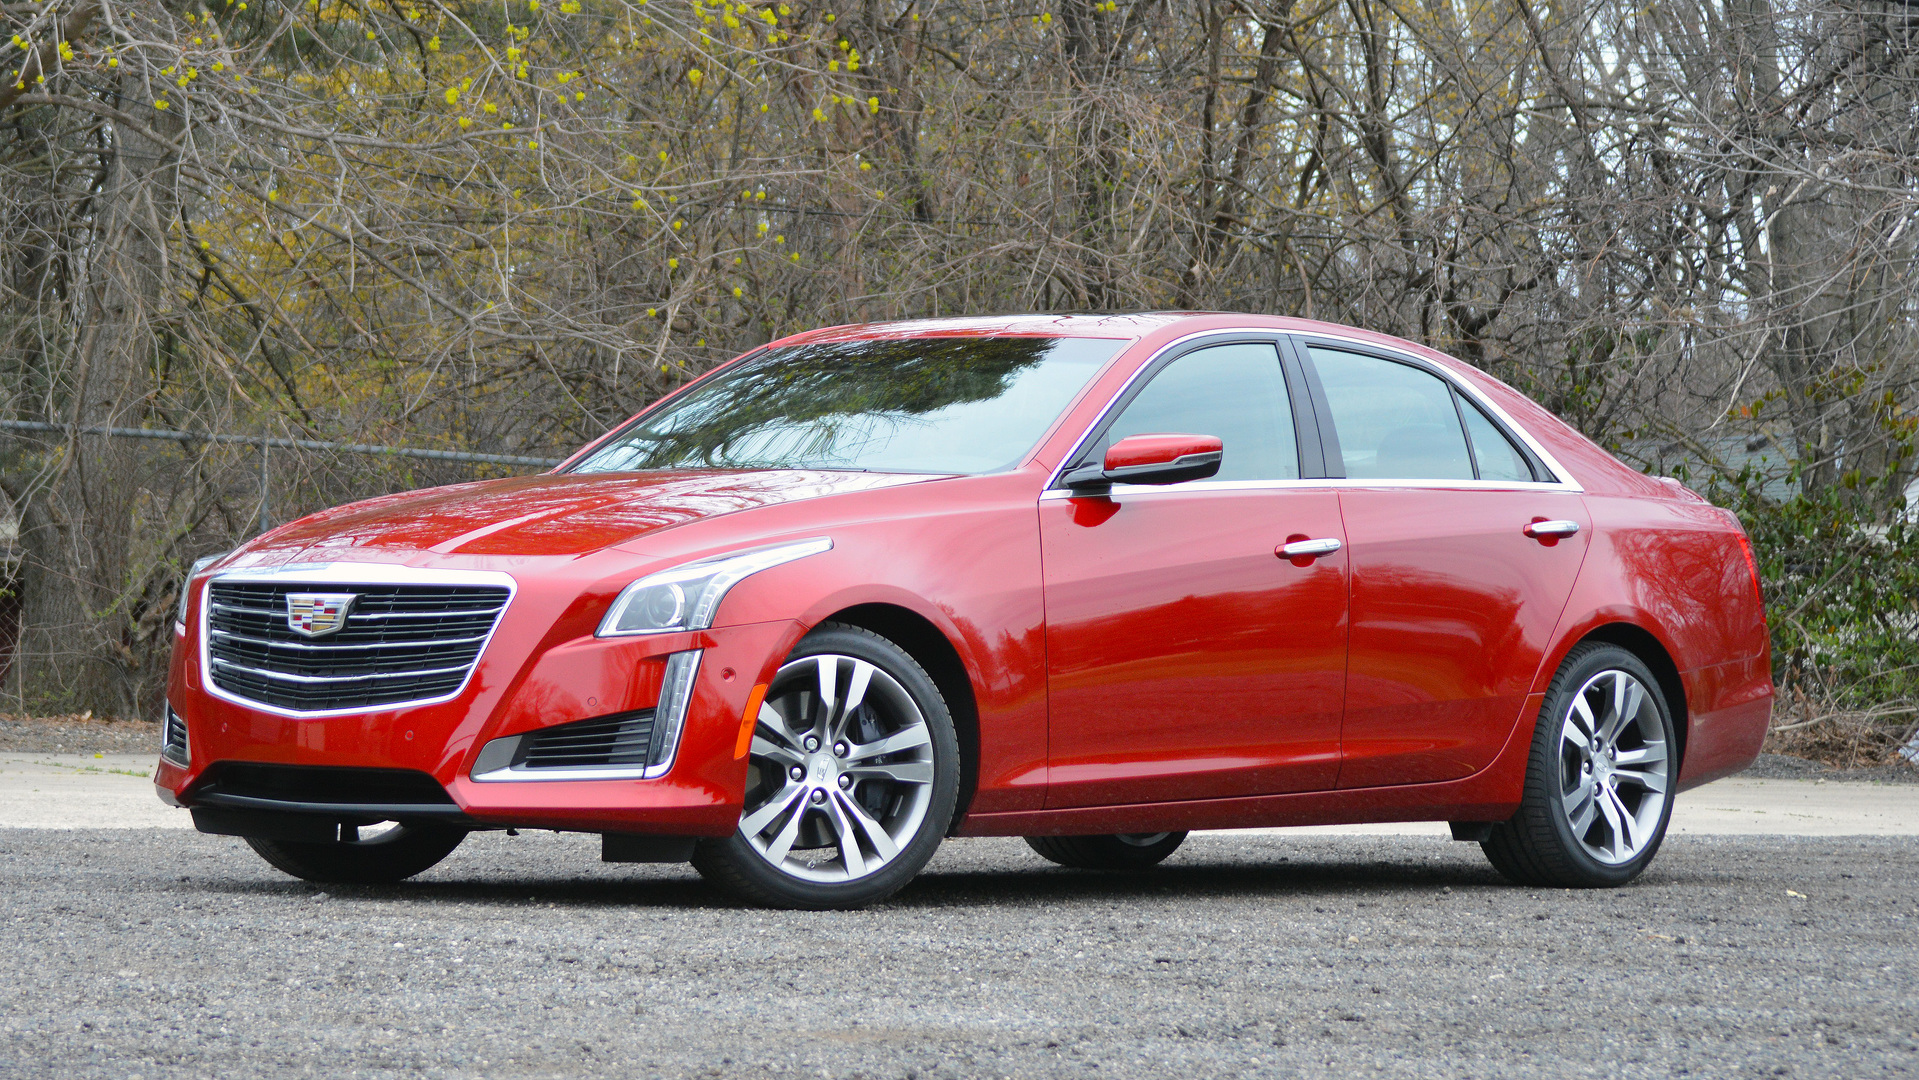 2016 cadillac cts v priced from 83 995 goes on sale in late summer. Black Bedroom Furniture Sets. Home Design Ideas